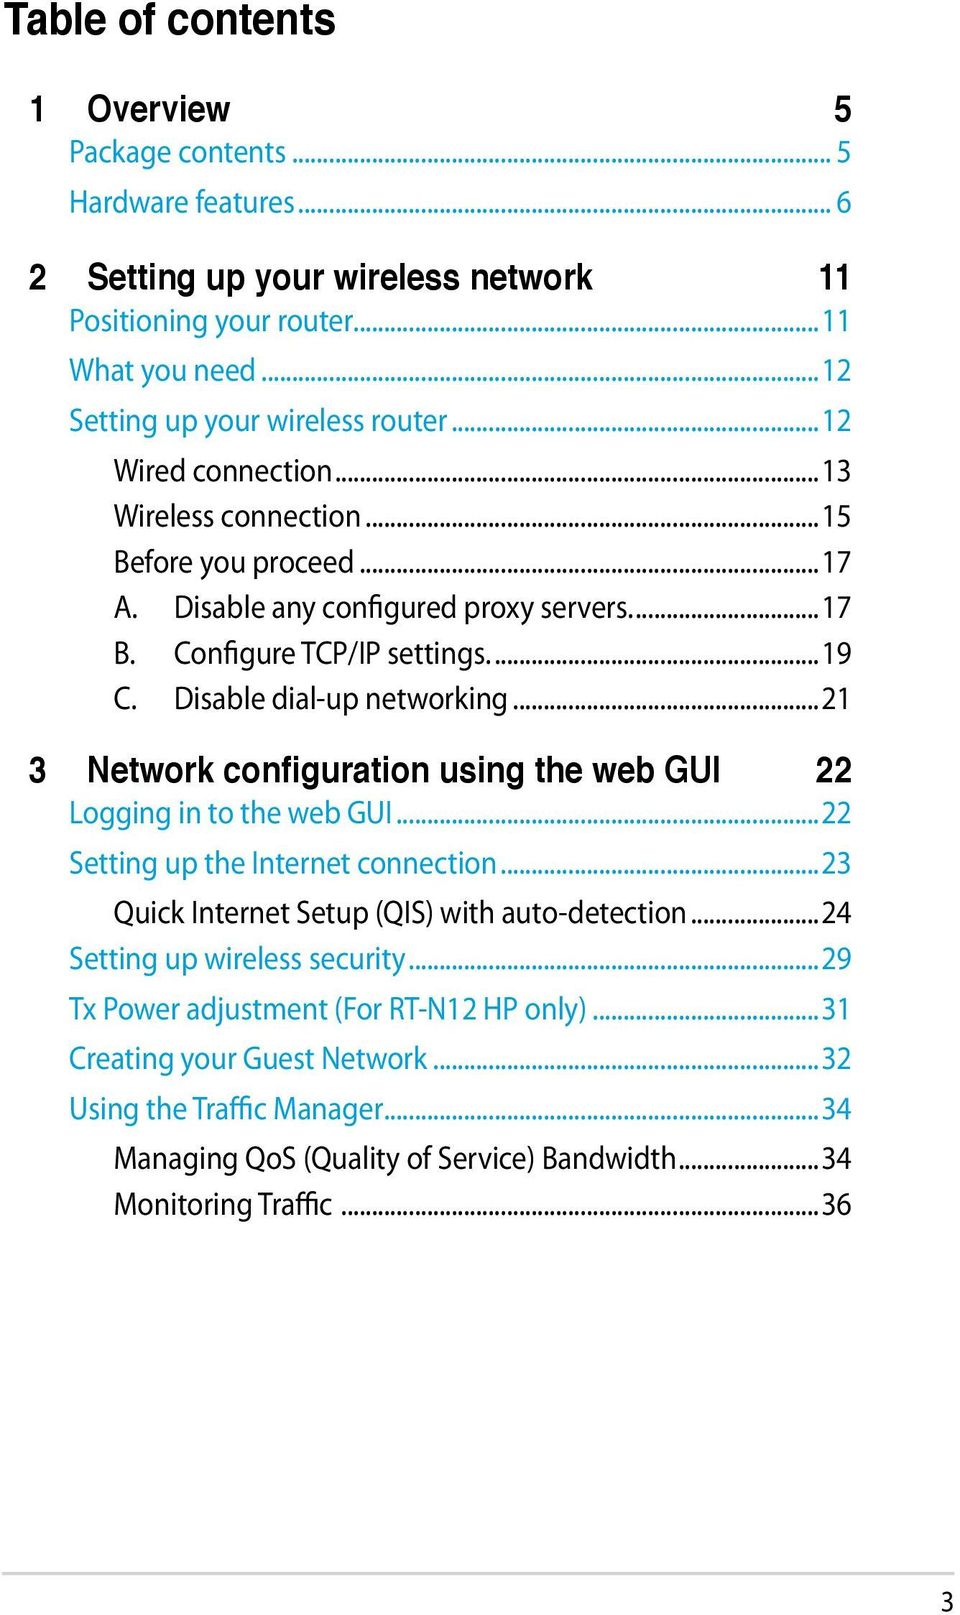 ..21 3 Network configuration using the web GUI 22 Logging in to the web GUI...22 Setting up the Internet connection...23 Quick Internet Setup (QIS) with auto-detection.